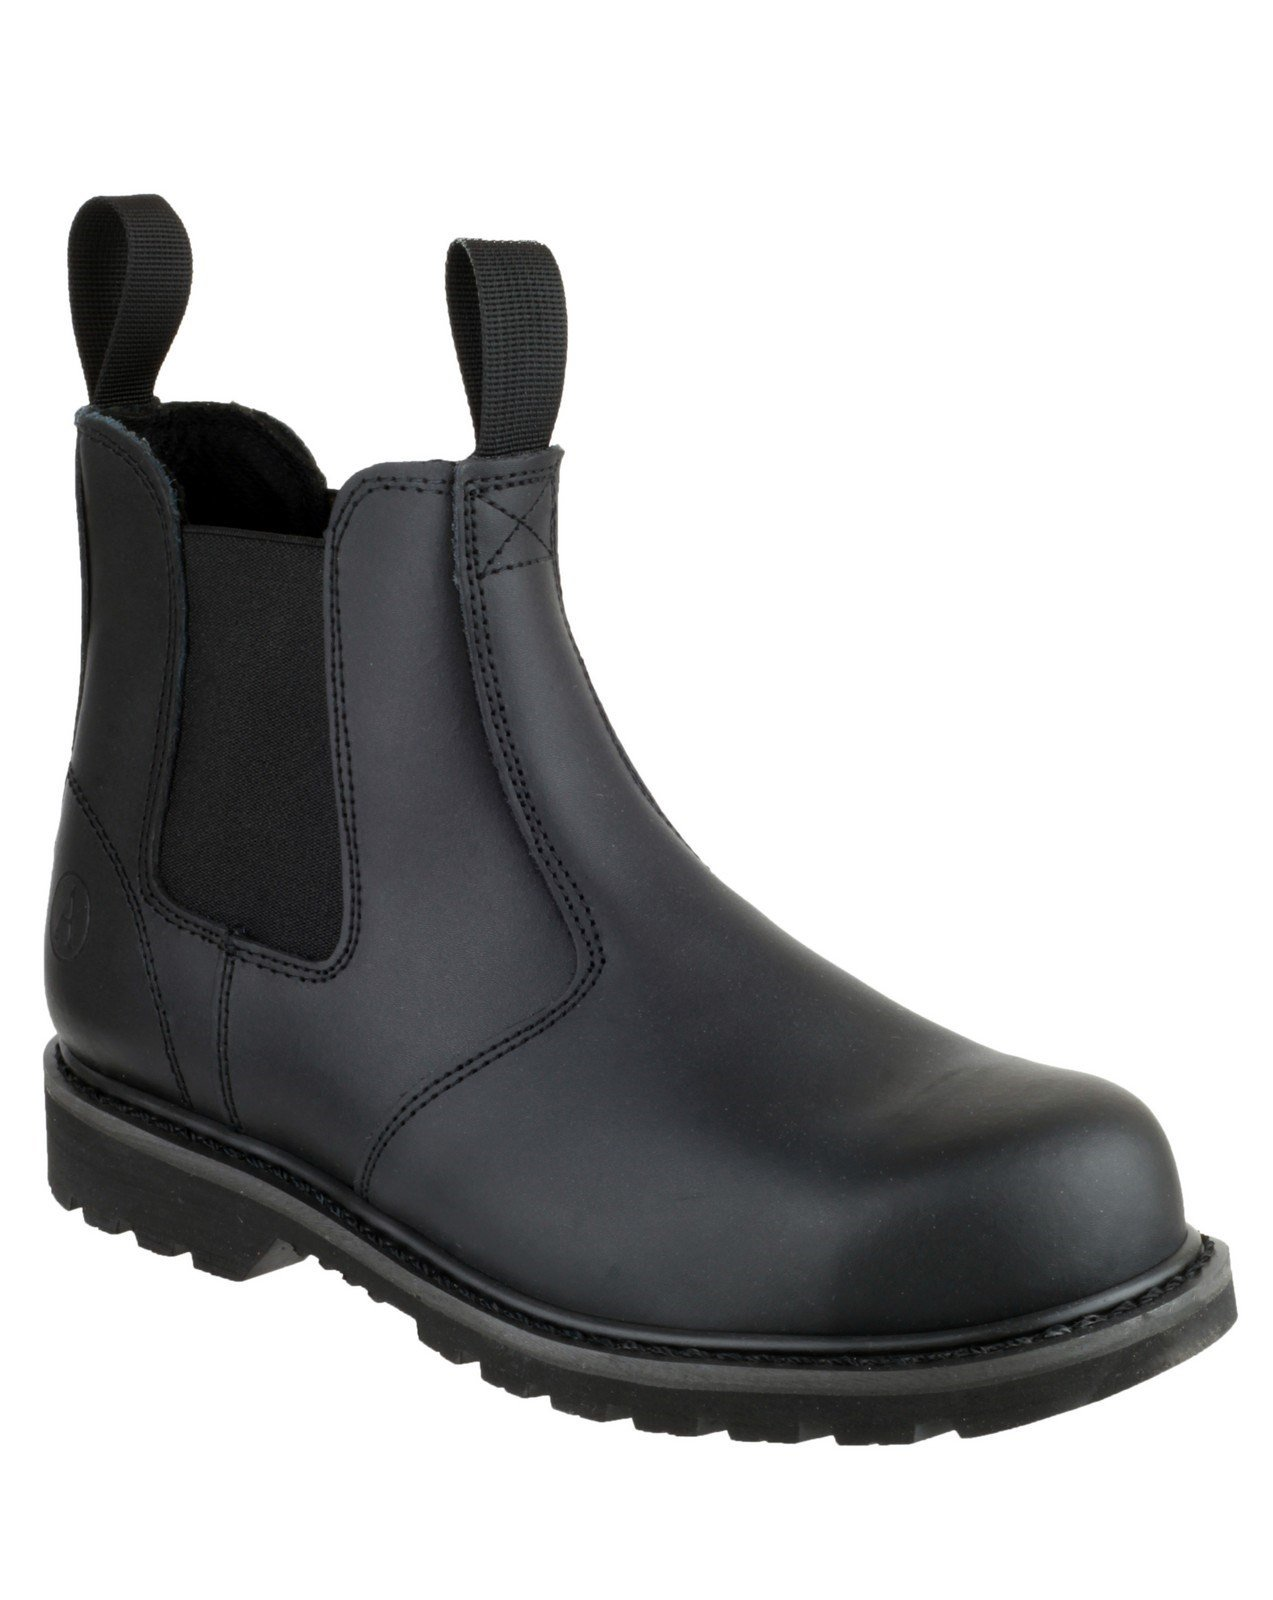 Amblers Unisex Safety Goodyear Welted Pull on Dealer Boot Black 18367 - Black 4